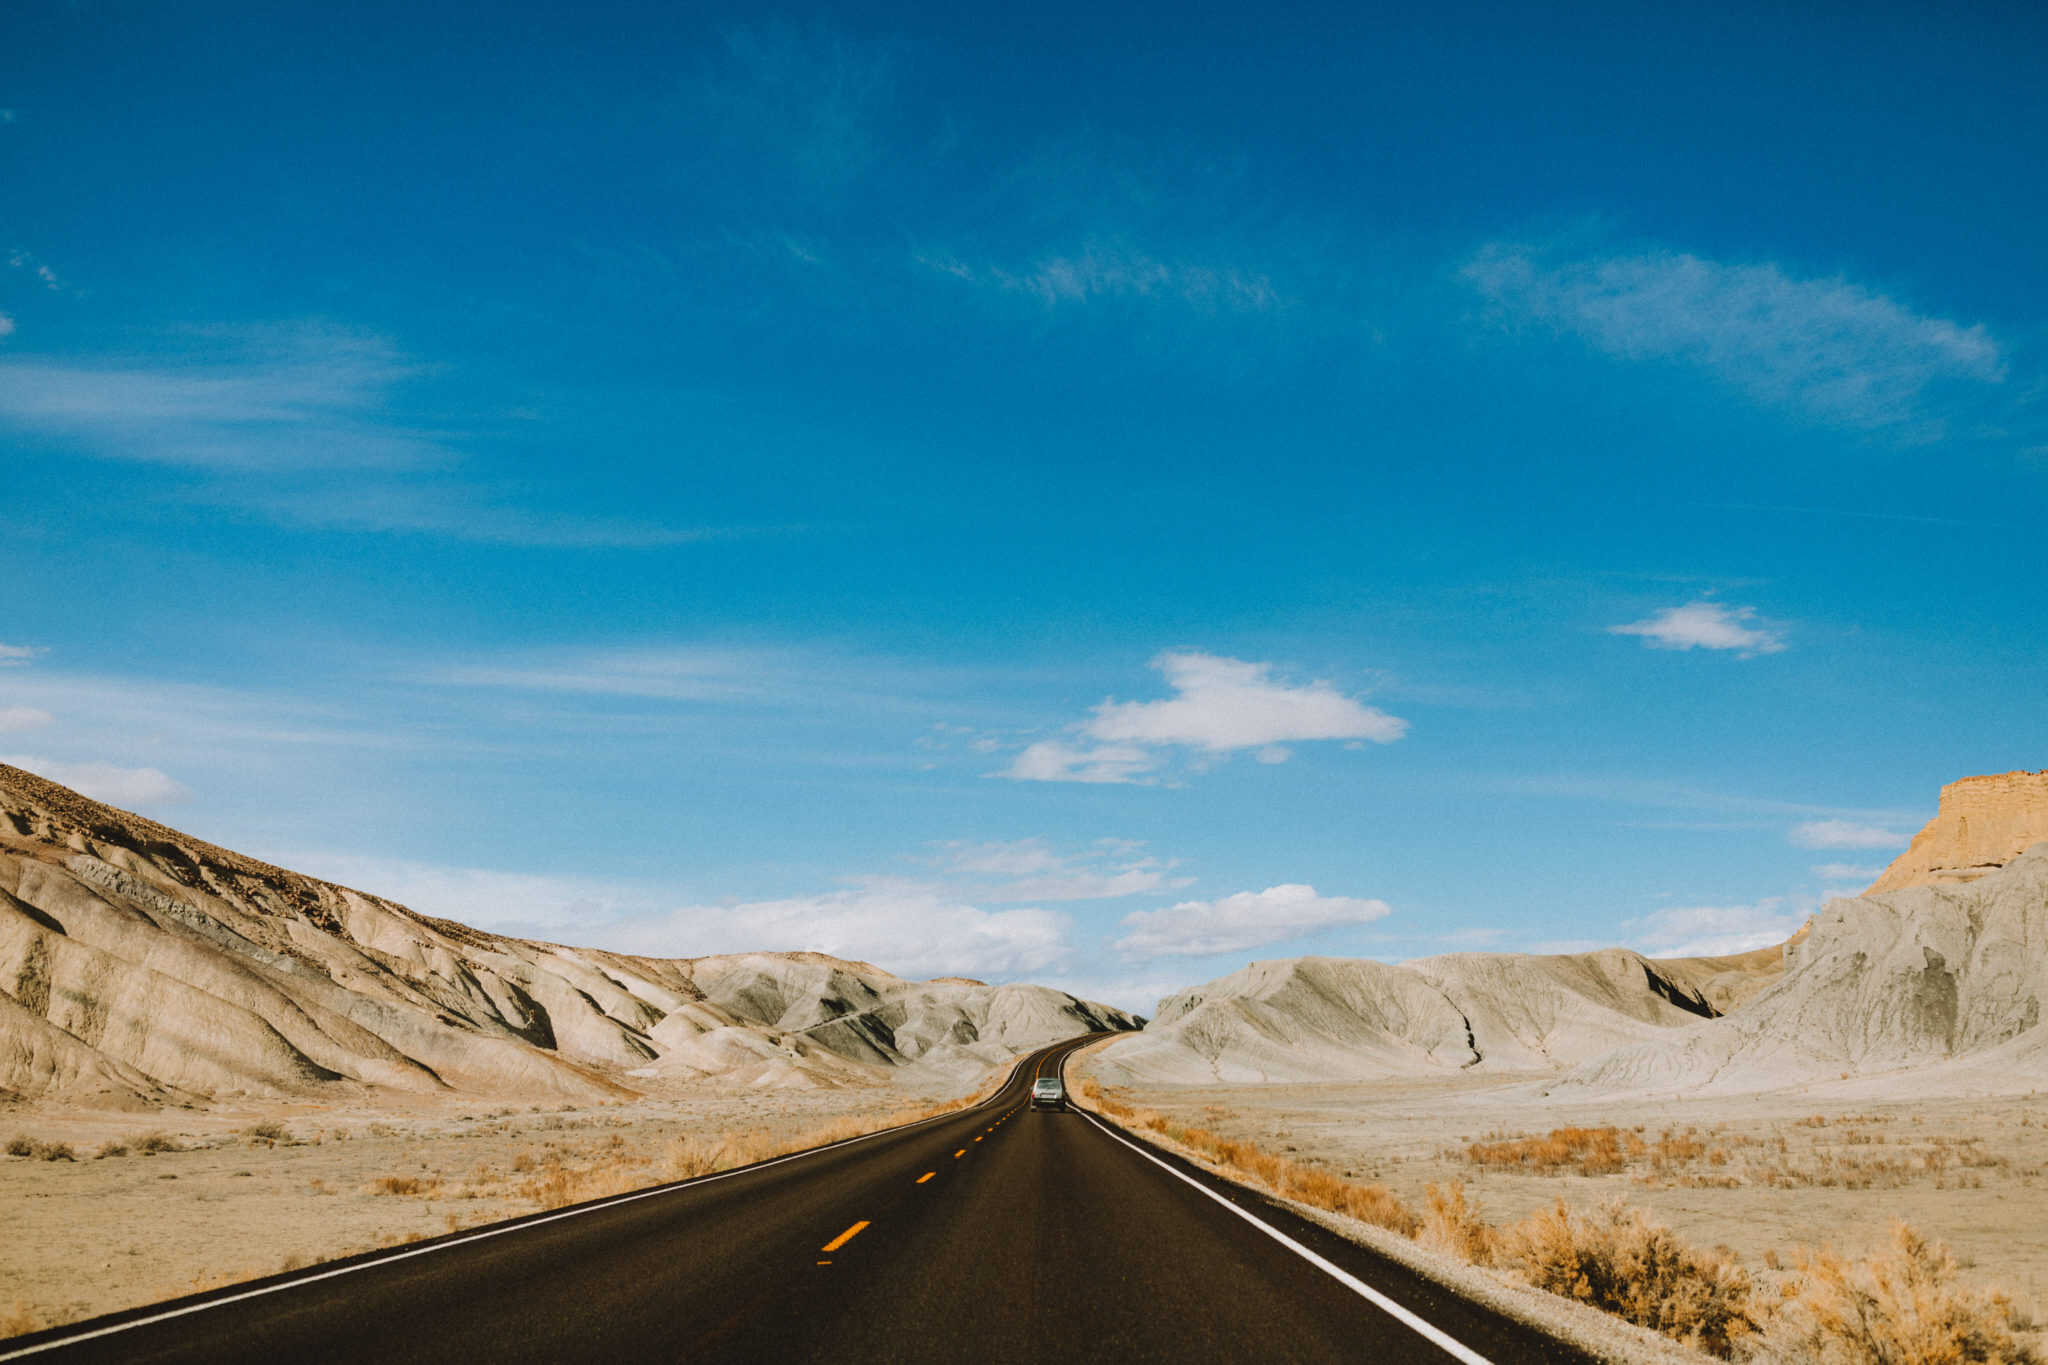 Capitol Reef National Park - Highway 24